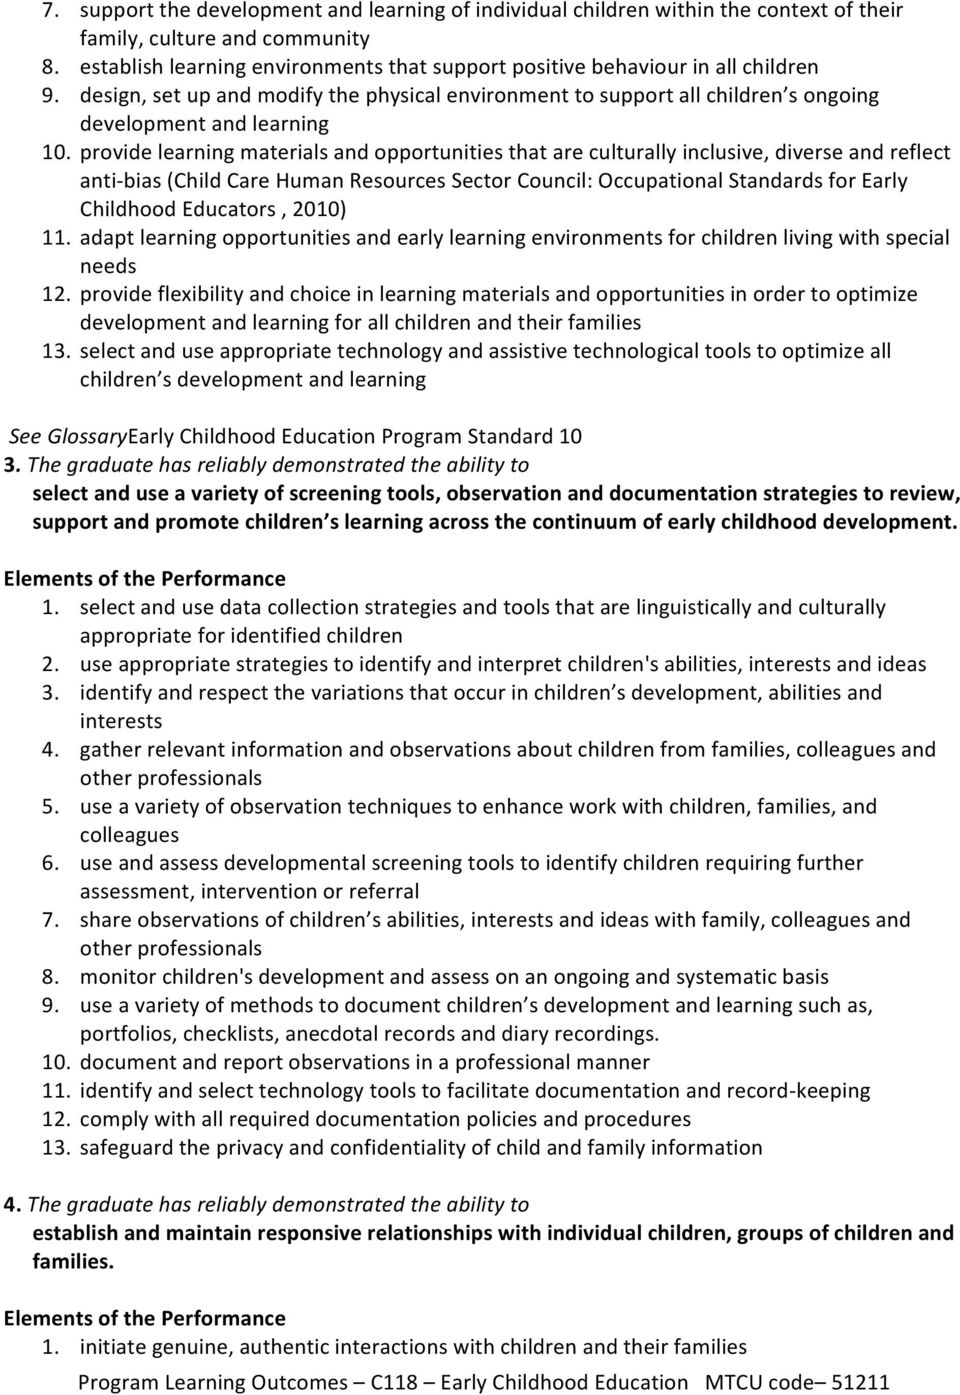 provide learning materials and opportunities that are culturally inclusive, diverse and reflect anti- bias (Child Care Human Resources Sector Council: Occupational Standards for Early Childhood